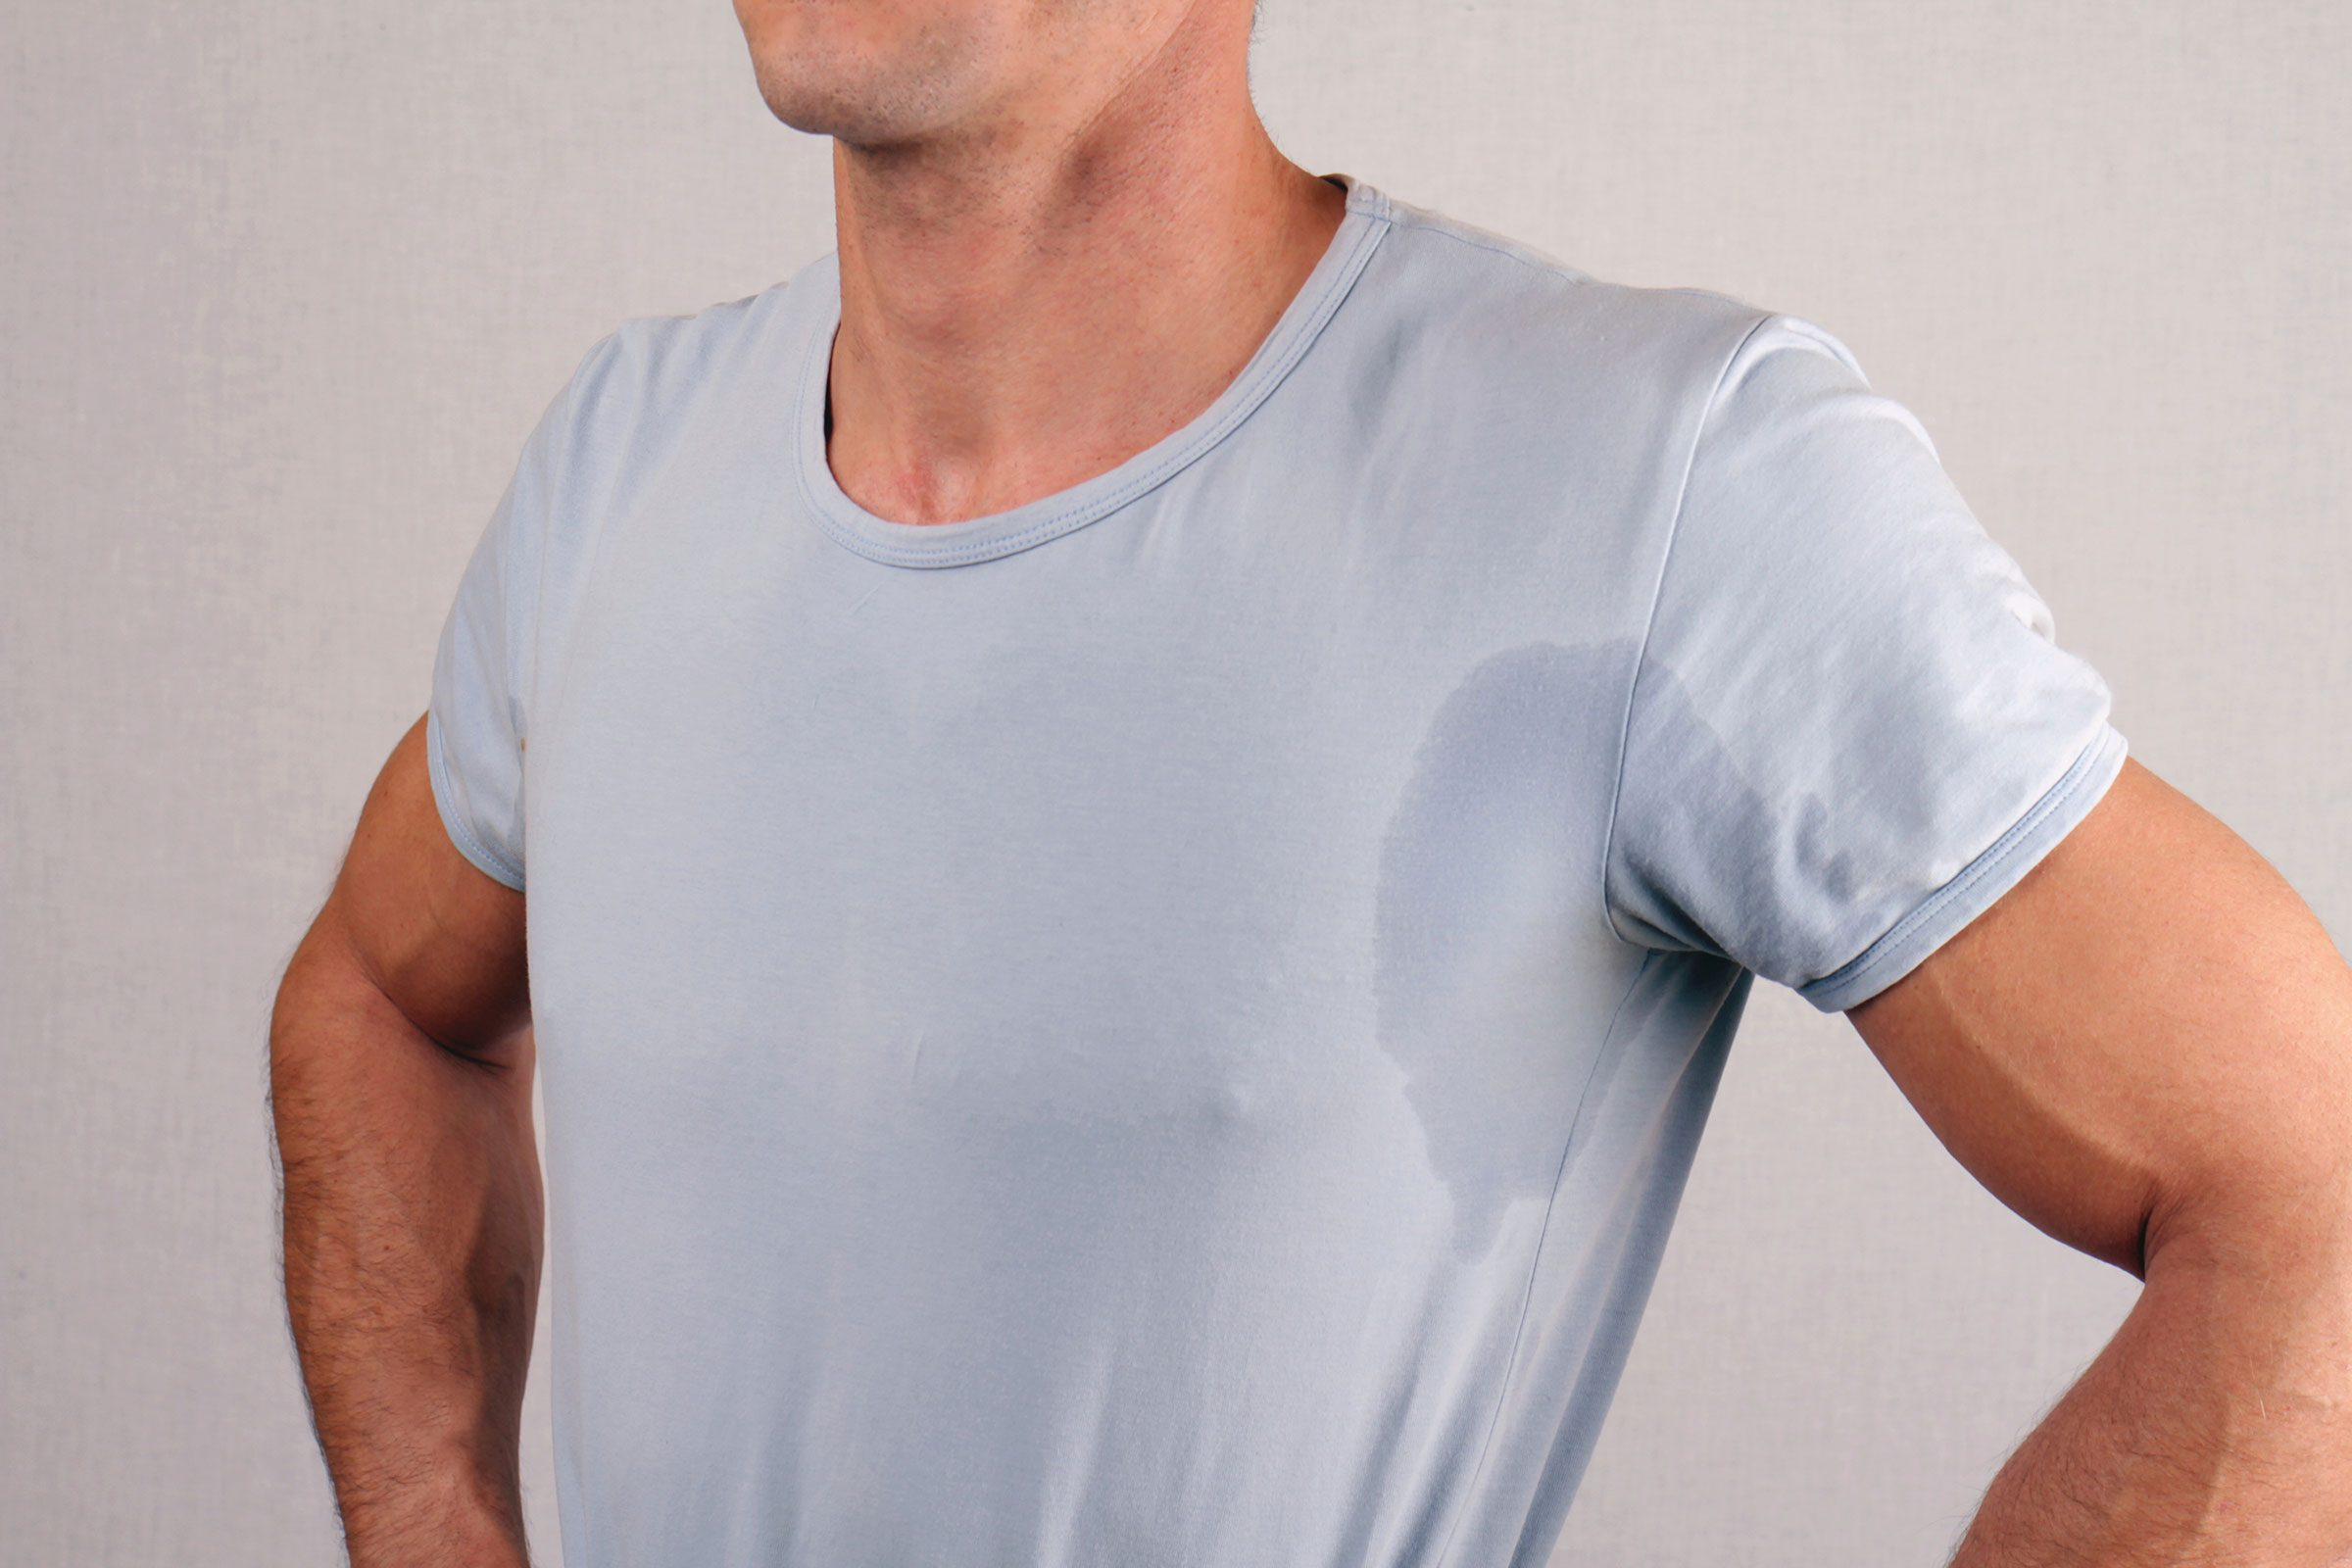 Why does armpit sweat smell worse than sweat from other places?